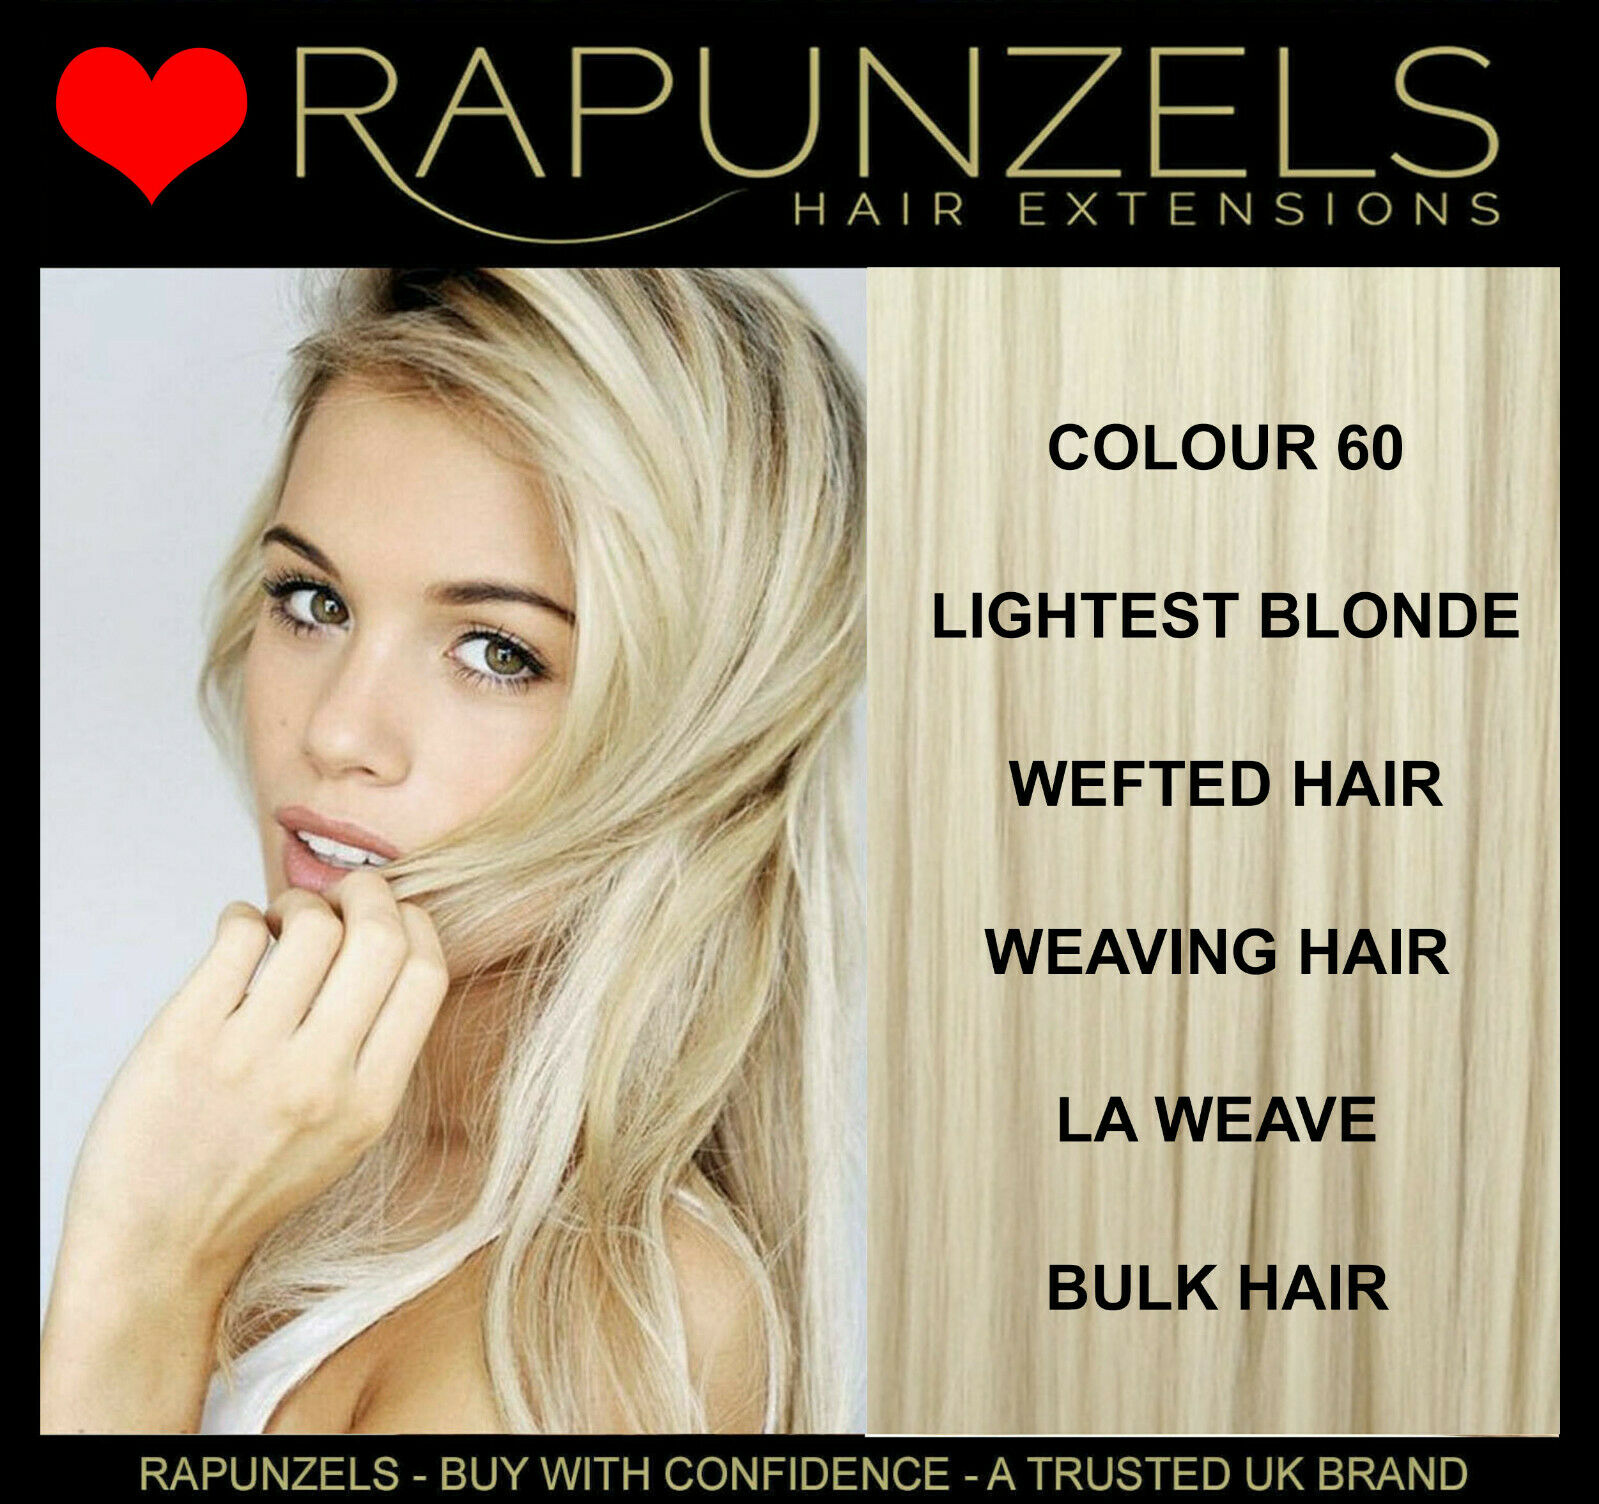 Platinum Blonde Lightest Blonde Rapunzels Human Hair Extensions